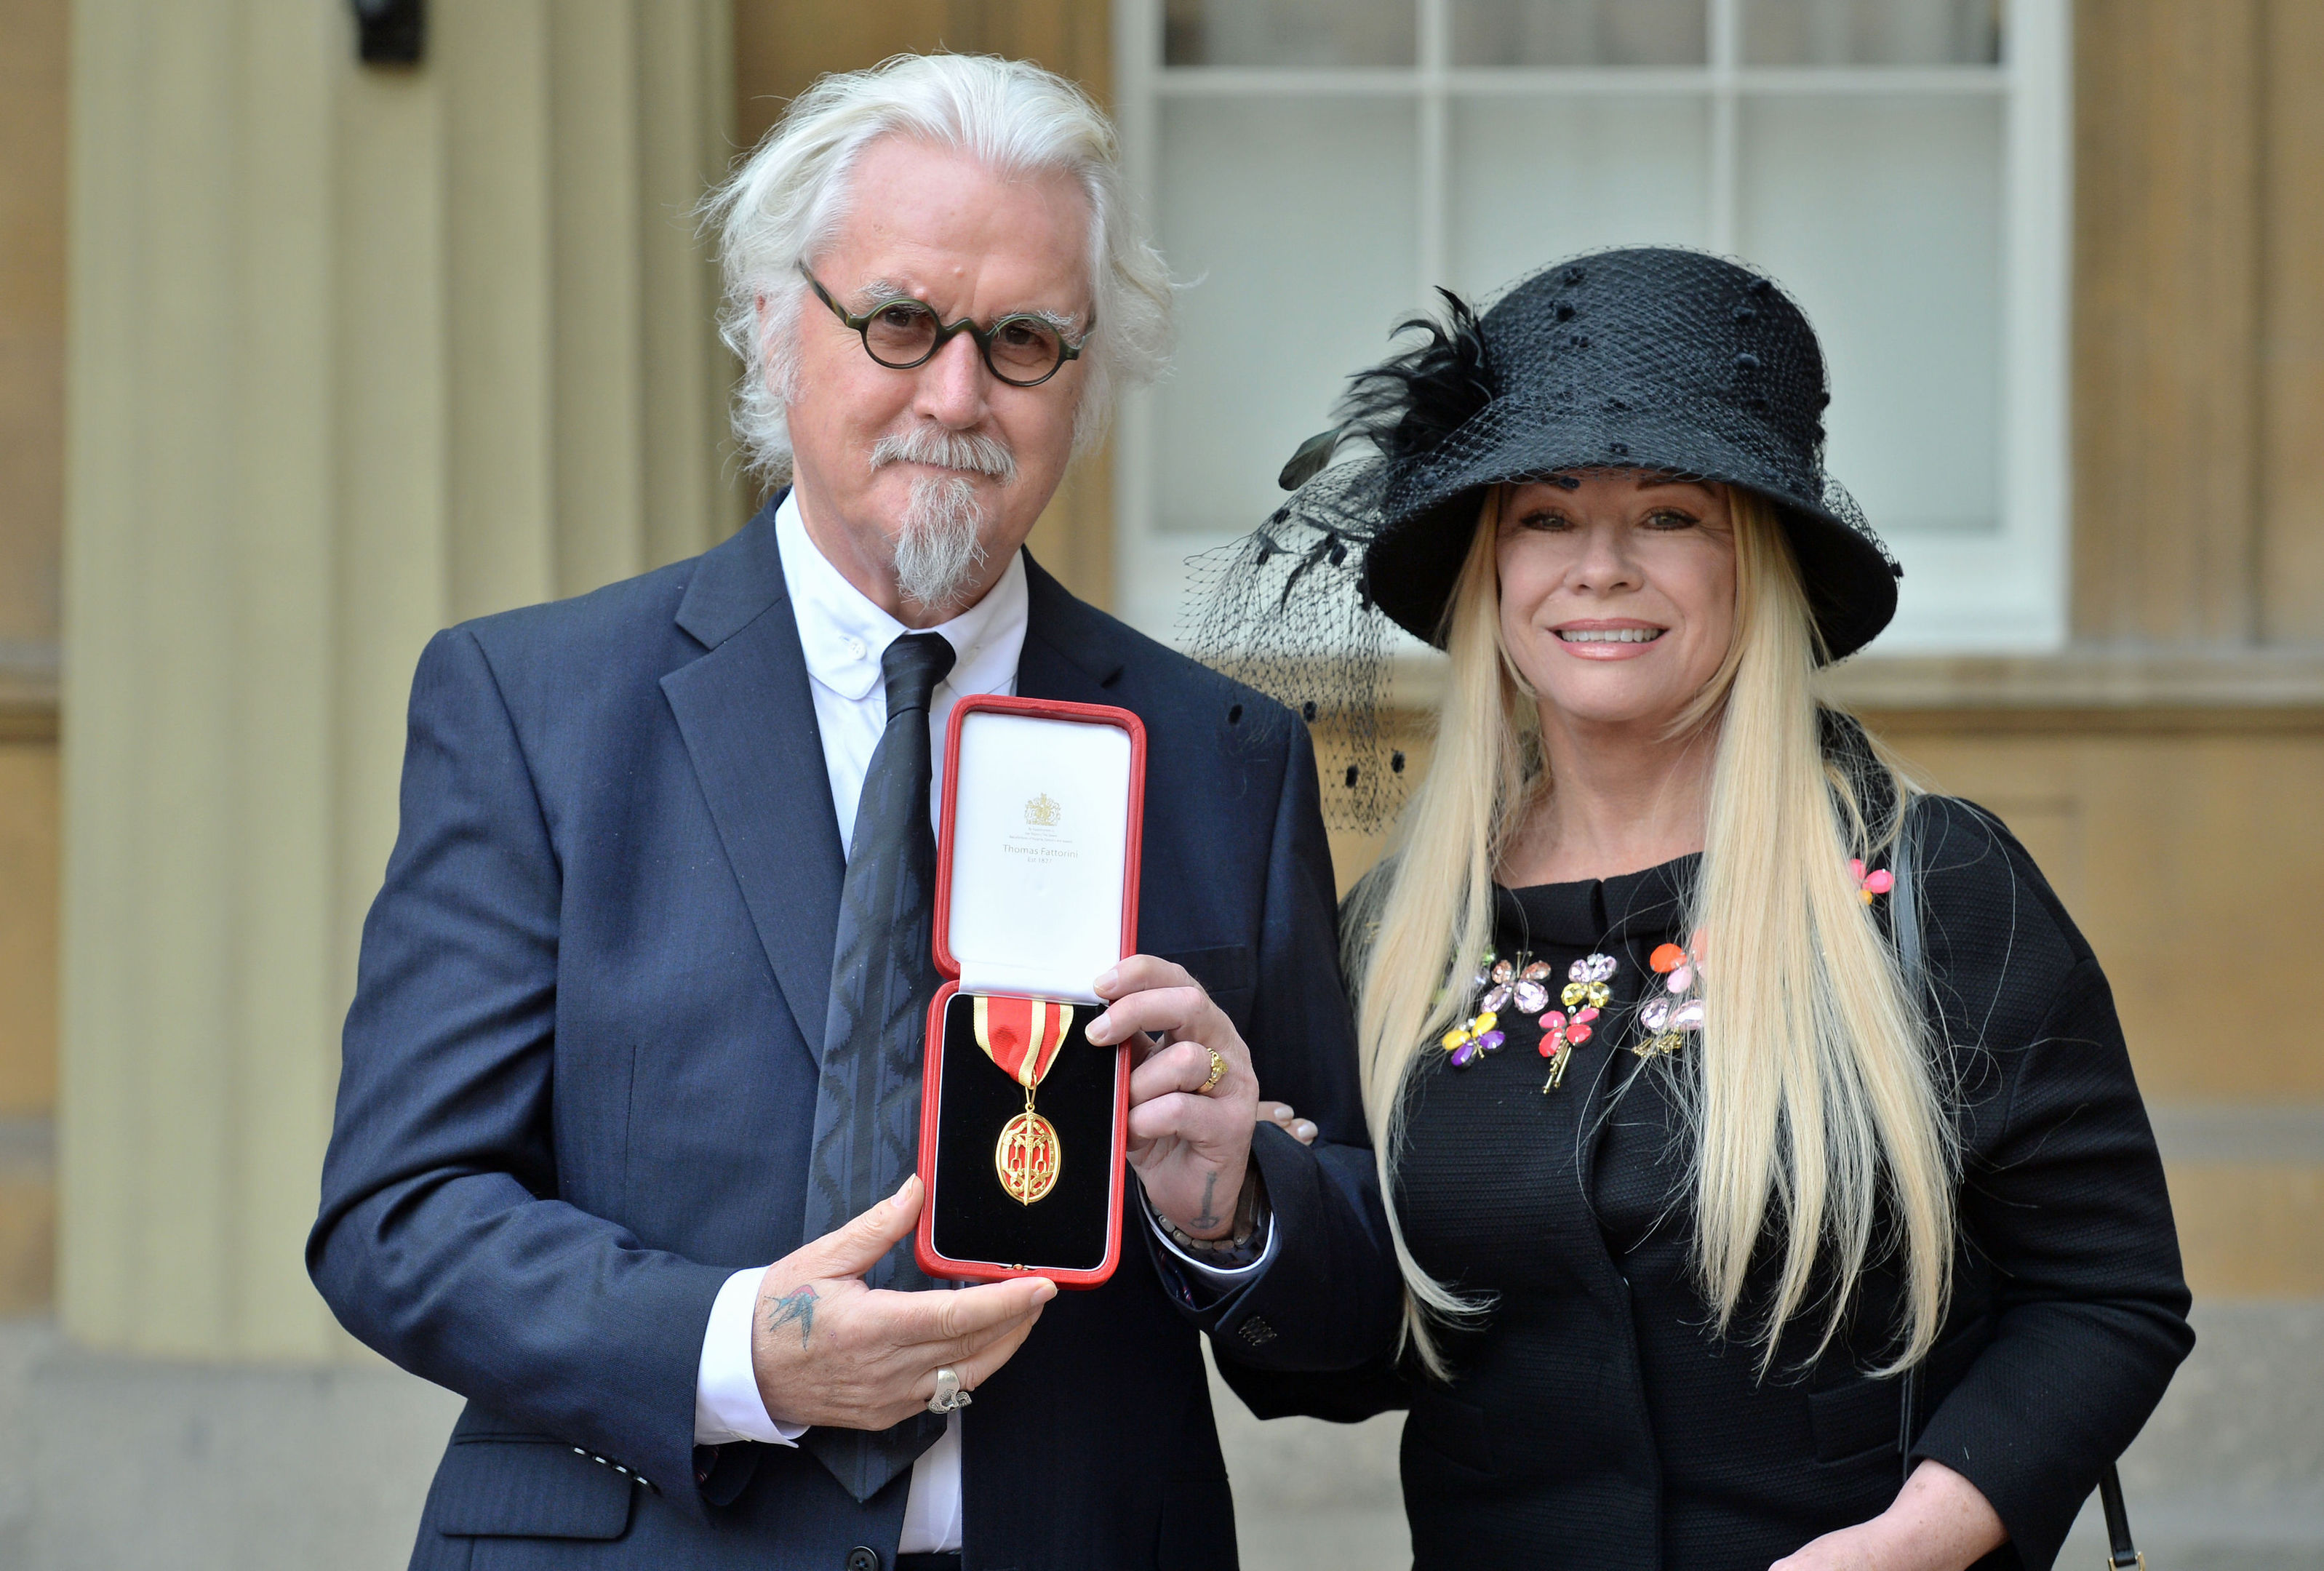 Sir Billy Connolly poses with his wife Pamela Stephenson, after being knighted by the Duke of Cambridge (John Stillwell - WPA Pool / Getty Images)